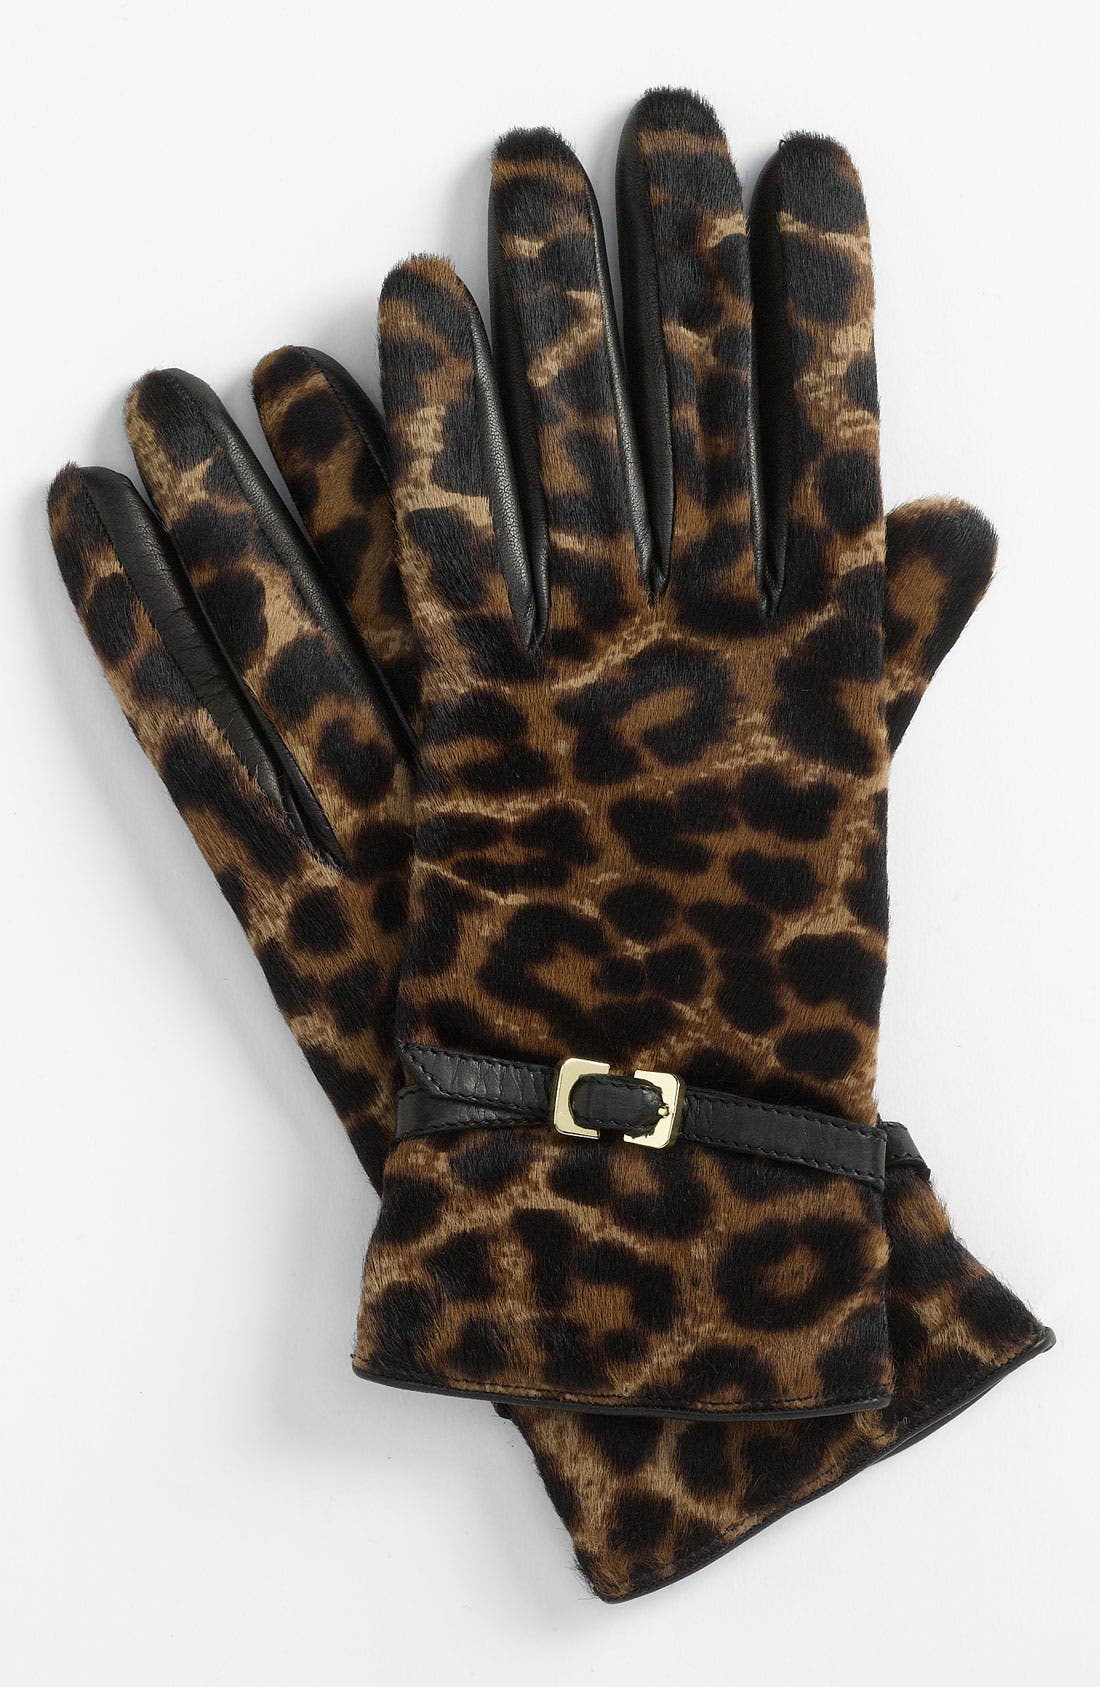 Alternate Image 1 Selected - Diane von Furstenberg Buckled Calf Hair Gloves